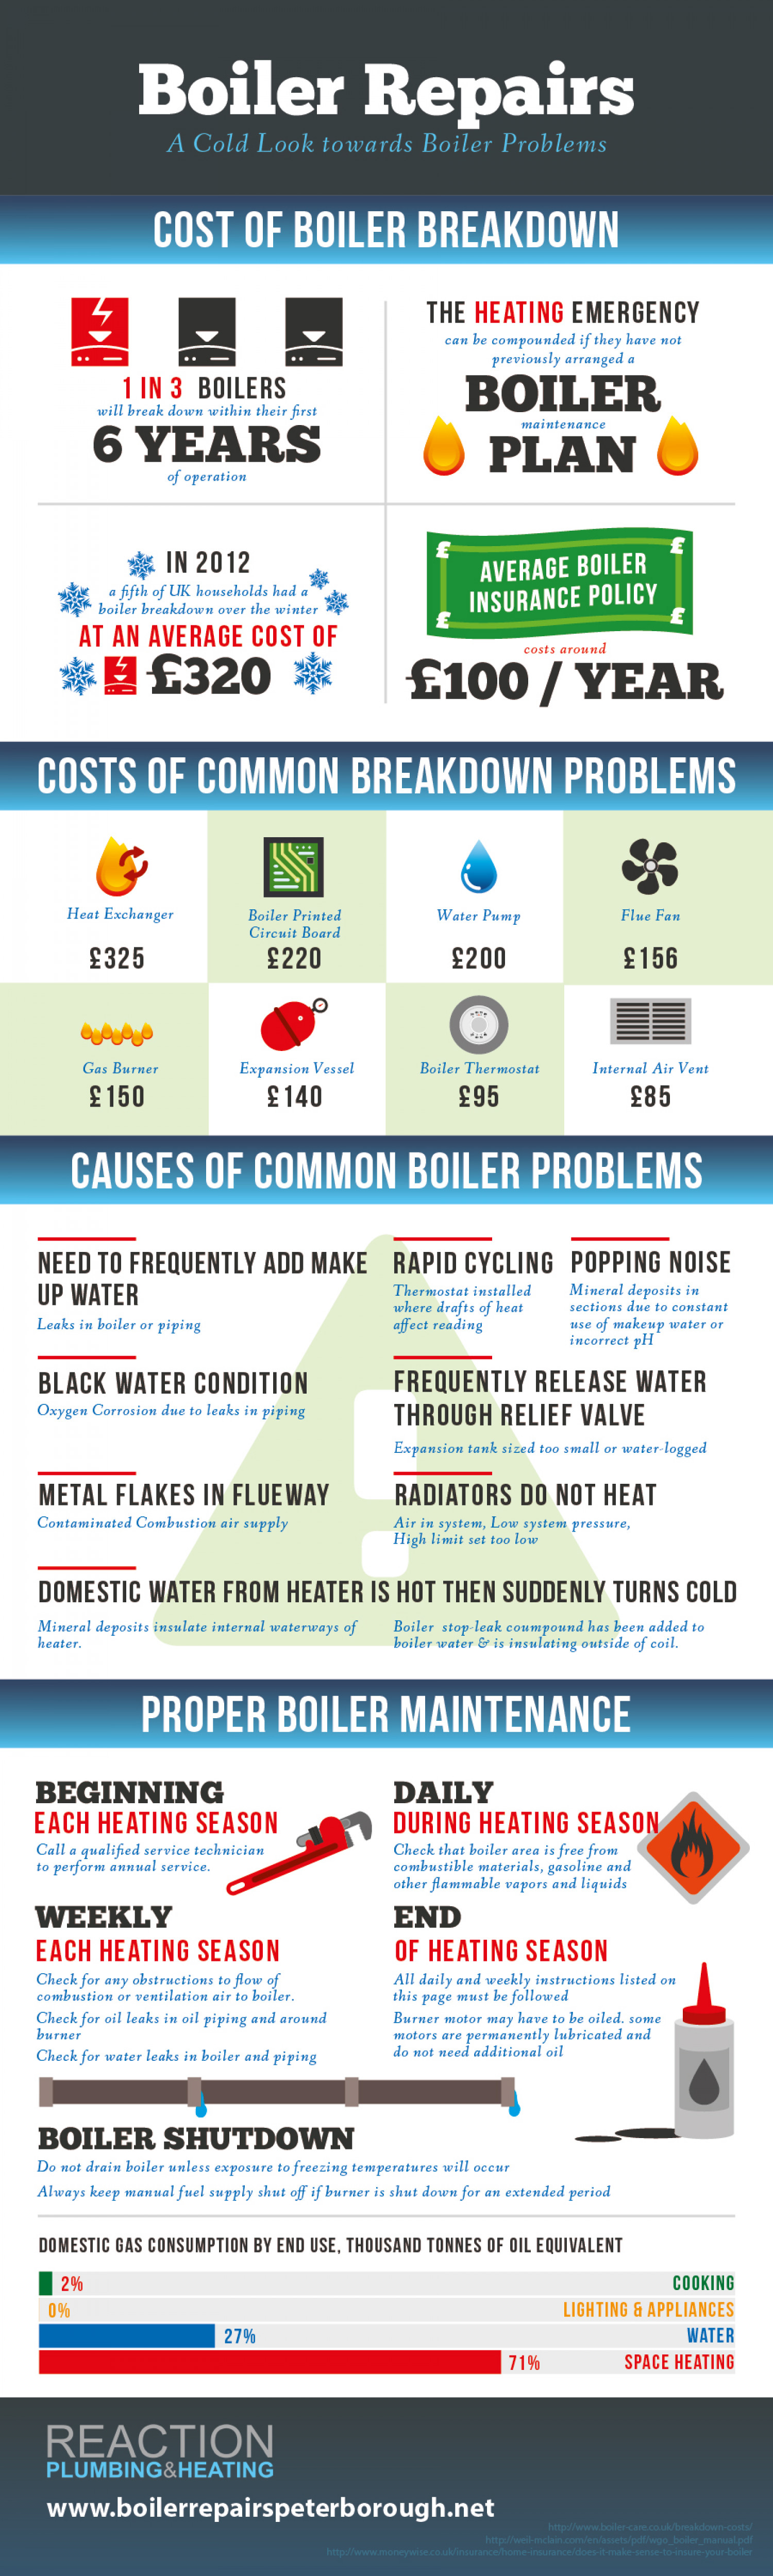 Boiler Repairs: A Cold Look Towards Boiler Problems Infographic